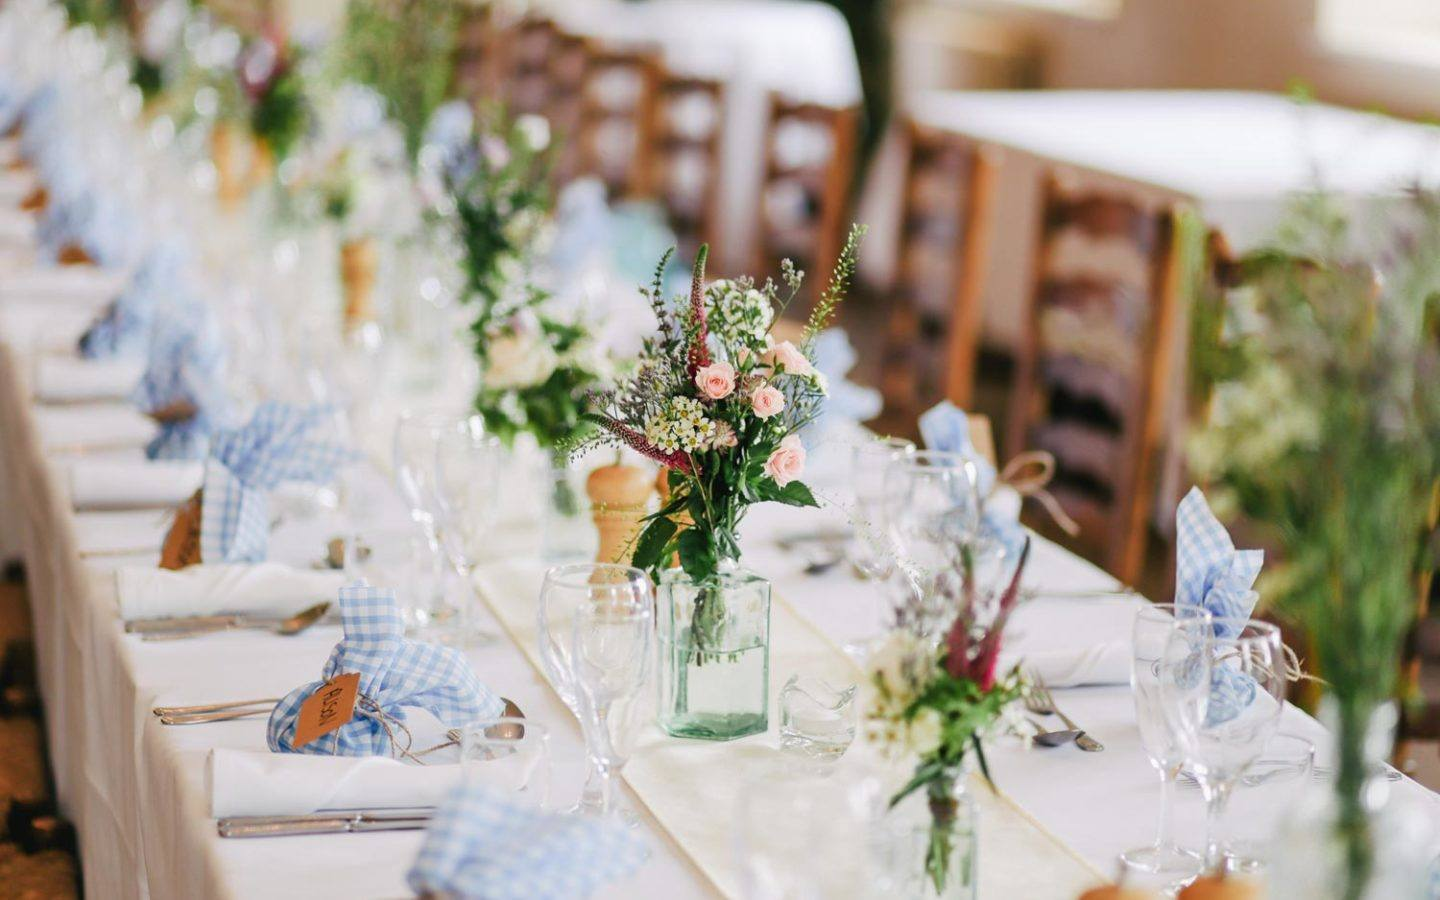 long table with tableware for wedding dinner